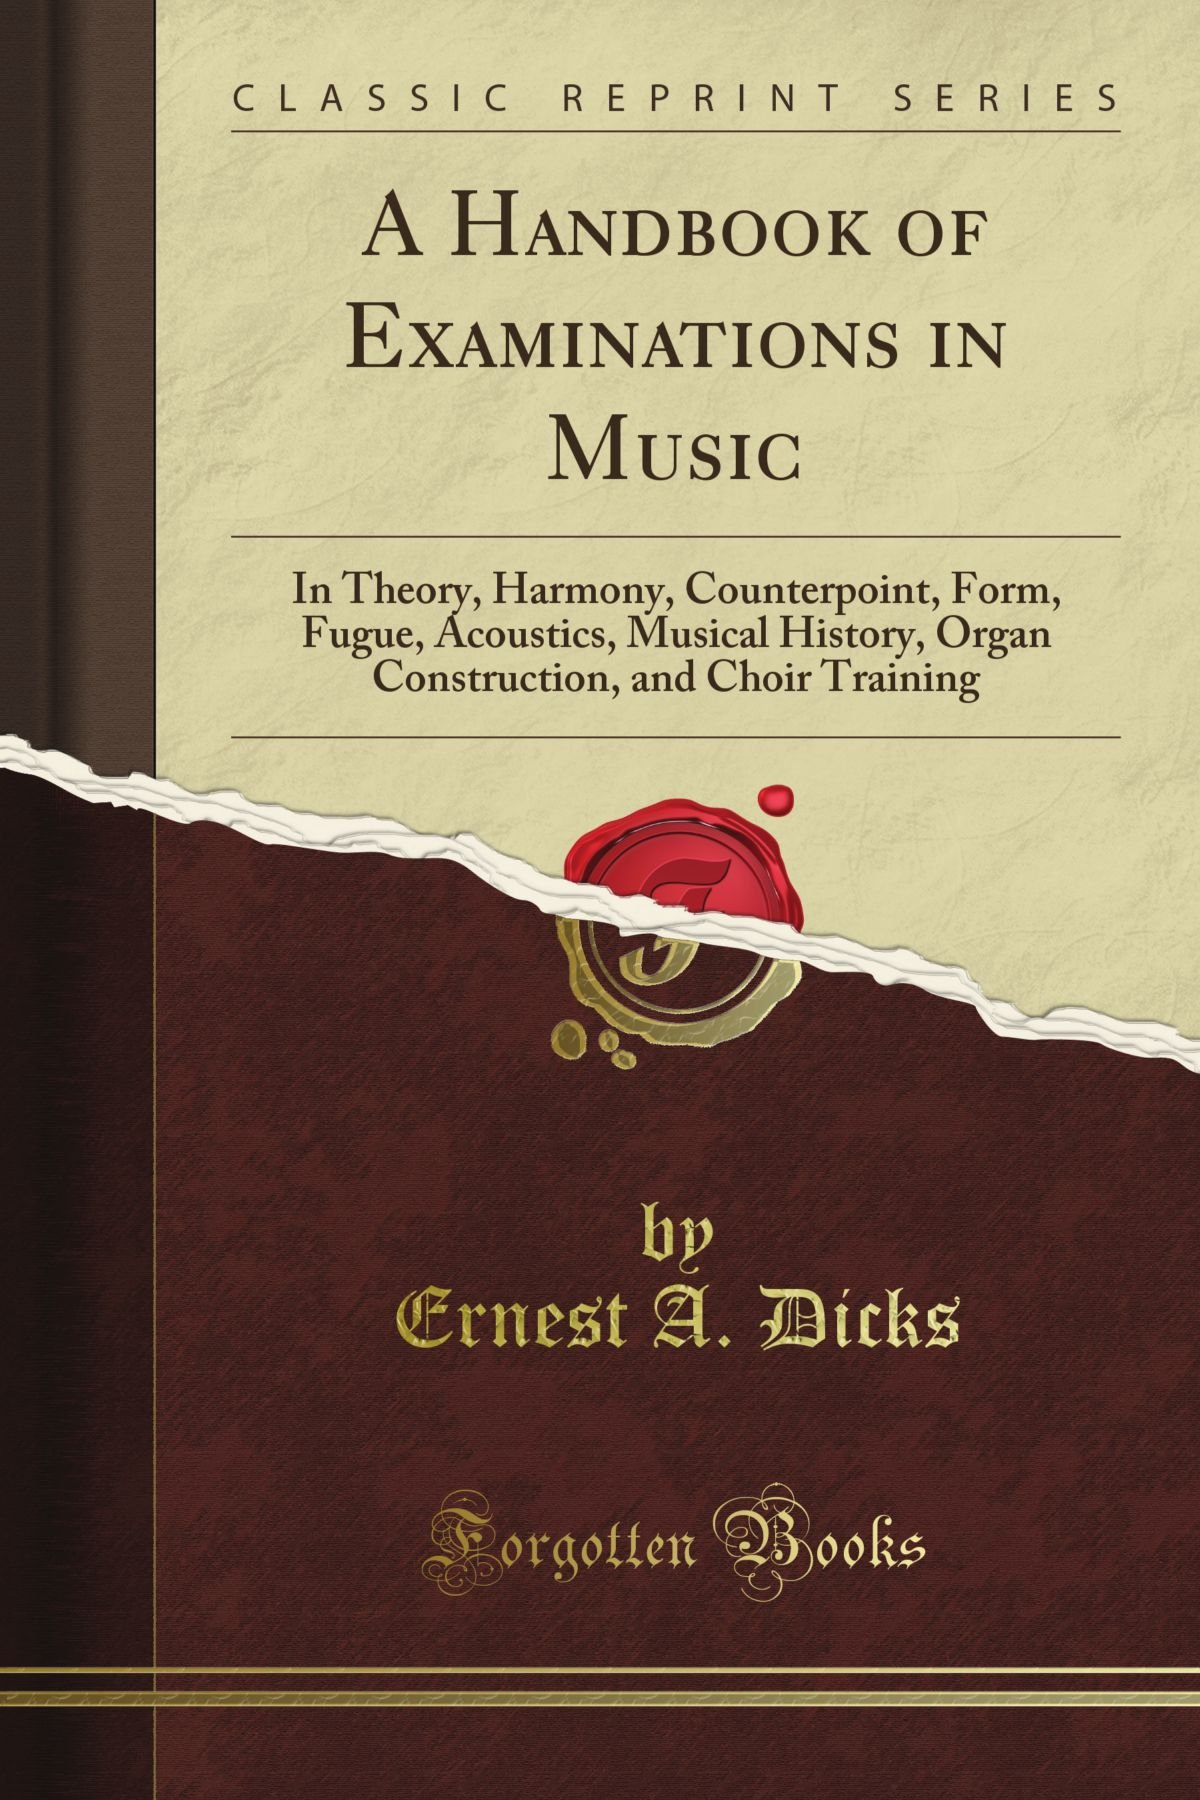 Download A Handbook of Examinations in Music: In Theory, Harmony, Counterpoint, Form, Fugue, Acoustics, Musical History, Organ Construction, and Choir Training (Classic Reprint) PDF